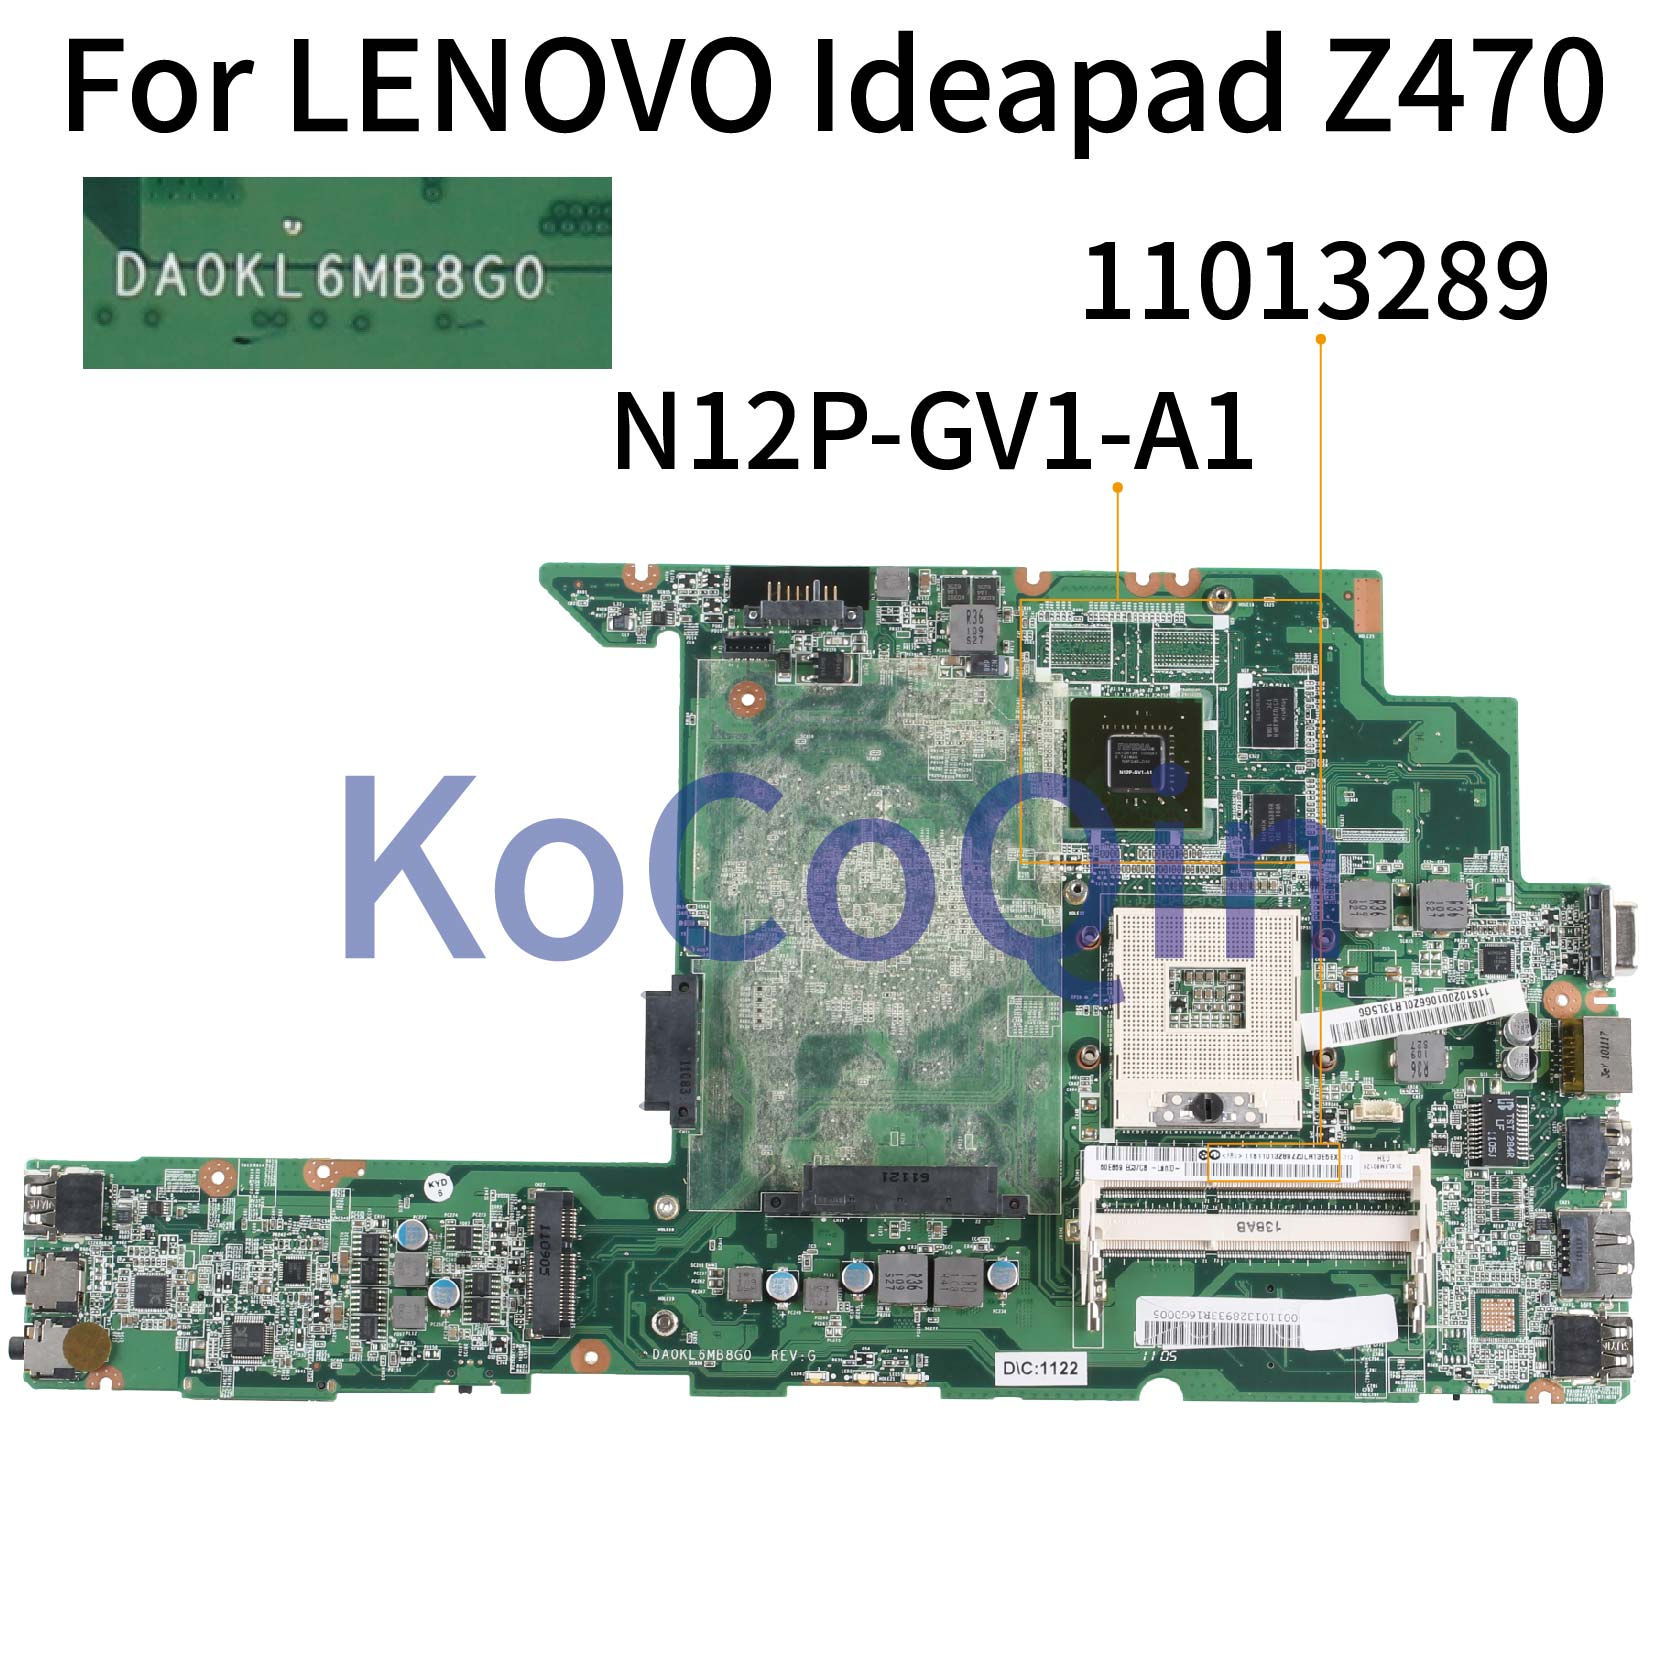 KoCoQin Laptop Motherboard For LENOVO Ideapad Z470 GT520M Mainboard DA0KL6MB8G0 N12P-GV1-A1 HM65